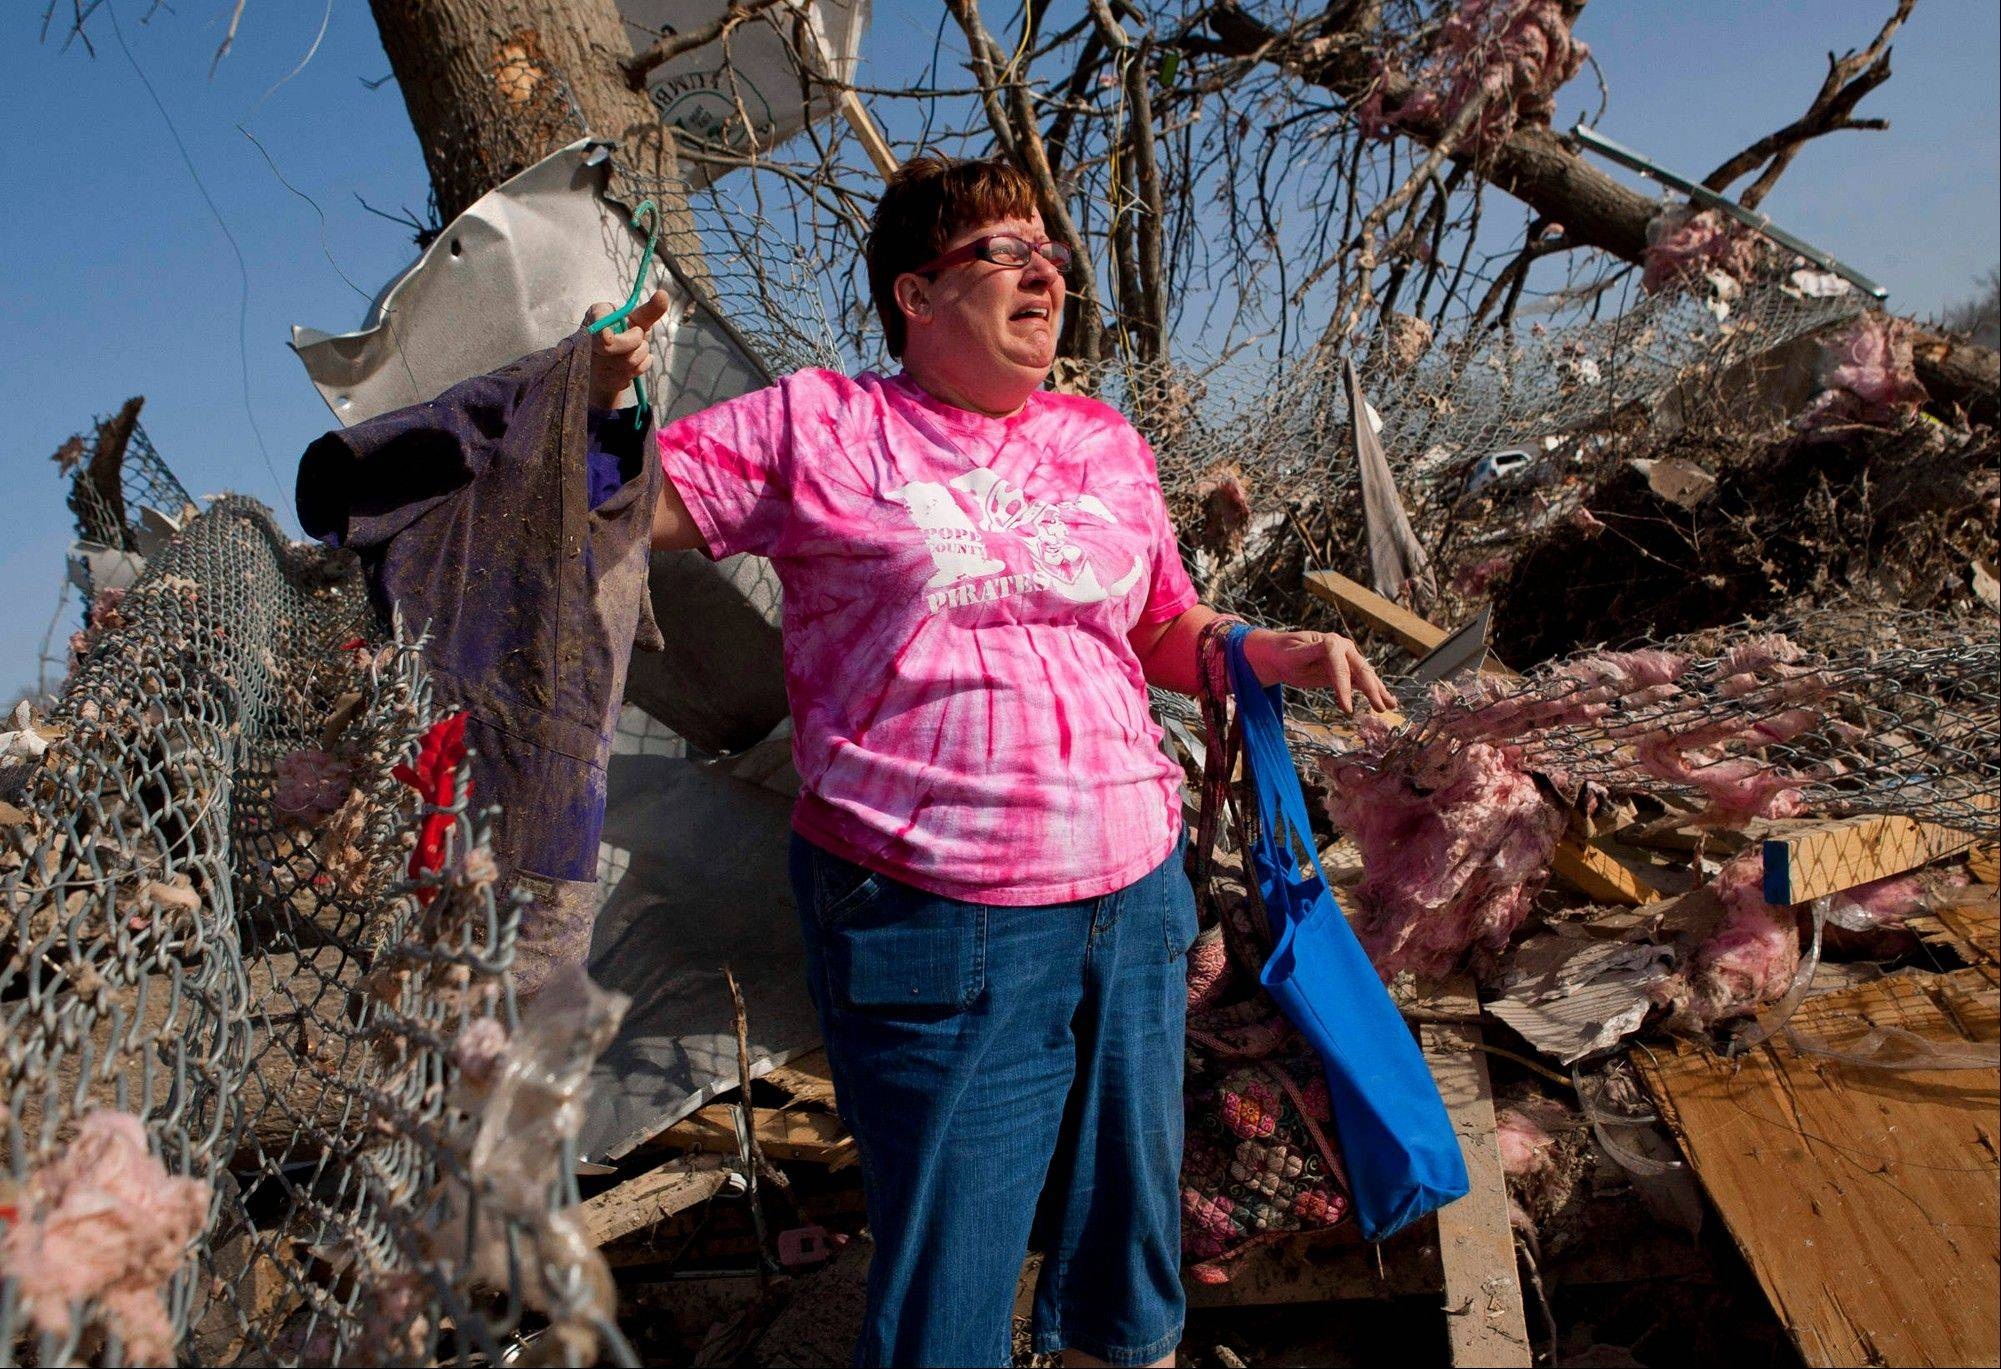 Patty Ferrell, of Herod, Ill., is overcome with emotion after finding the nursing scrubs that belonged to her daughter, Jaylynn Ferrell, 22, who was killed in a tornado that struck Harrisburg, Ill., on Wednesday, Feb. 29, 2012. The tornado destroyed the duplex where Jaylynn Ferrell had lived.